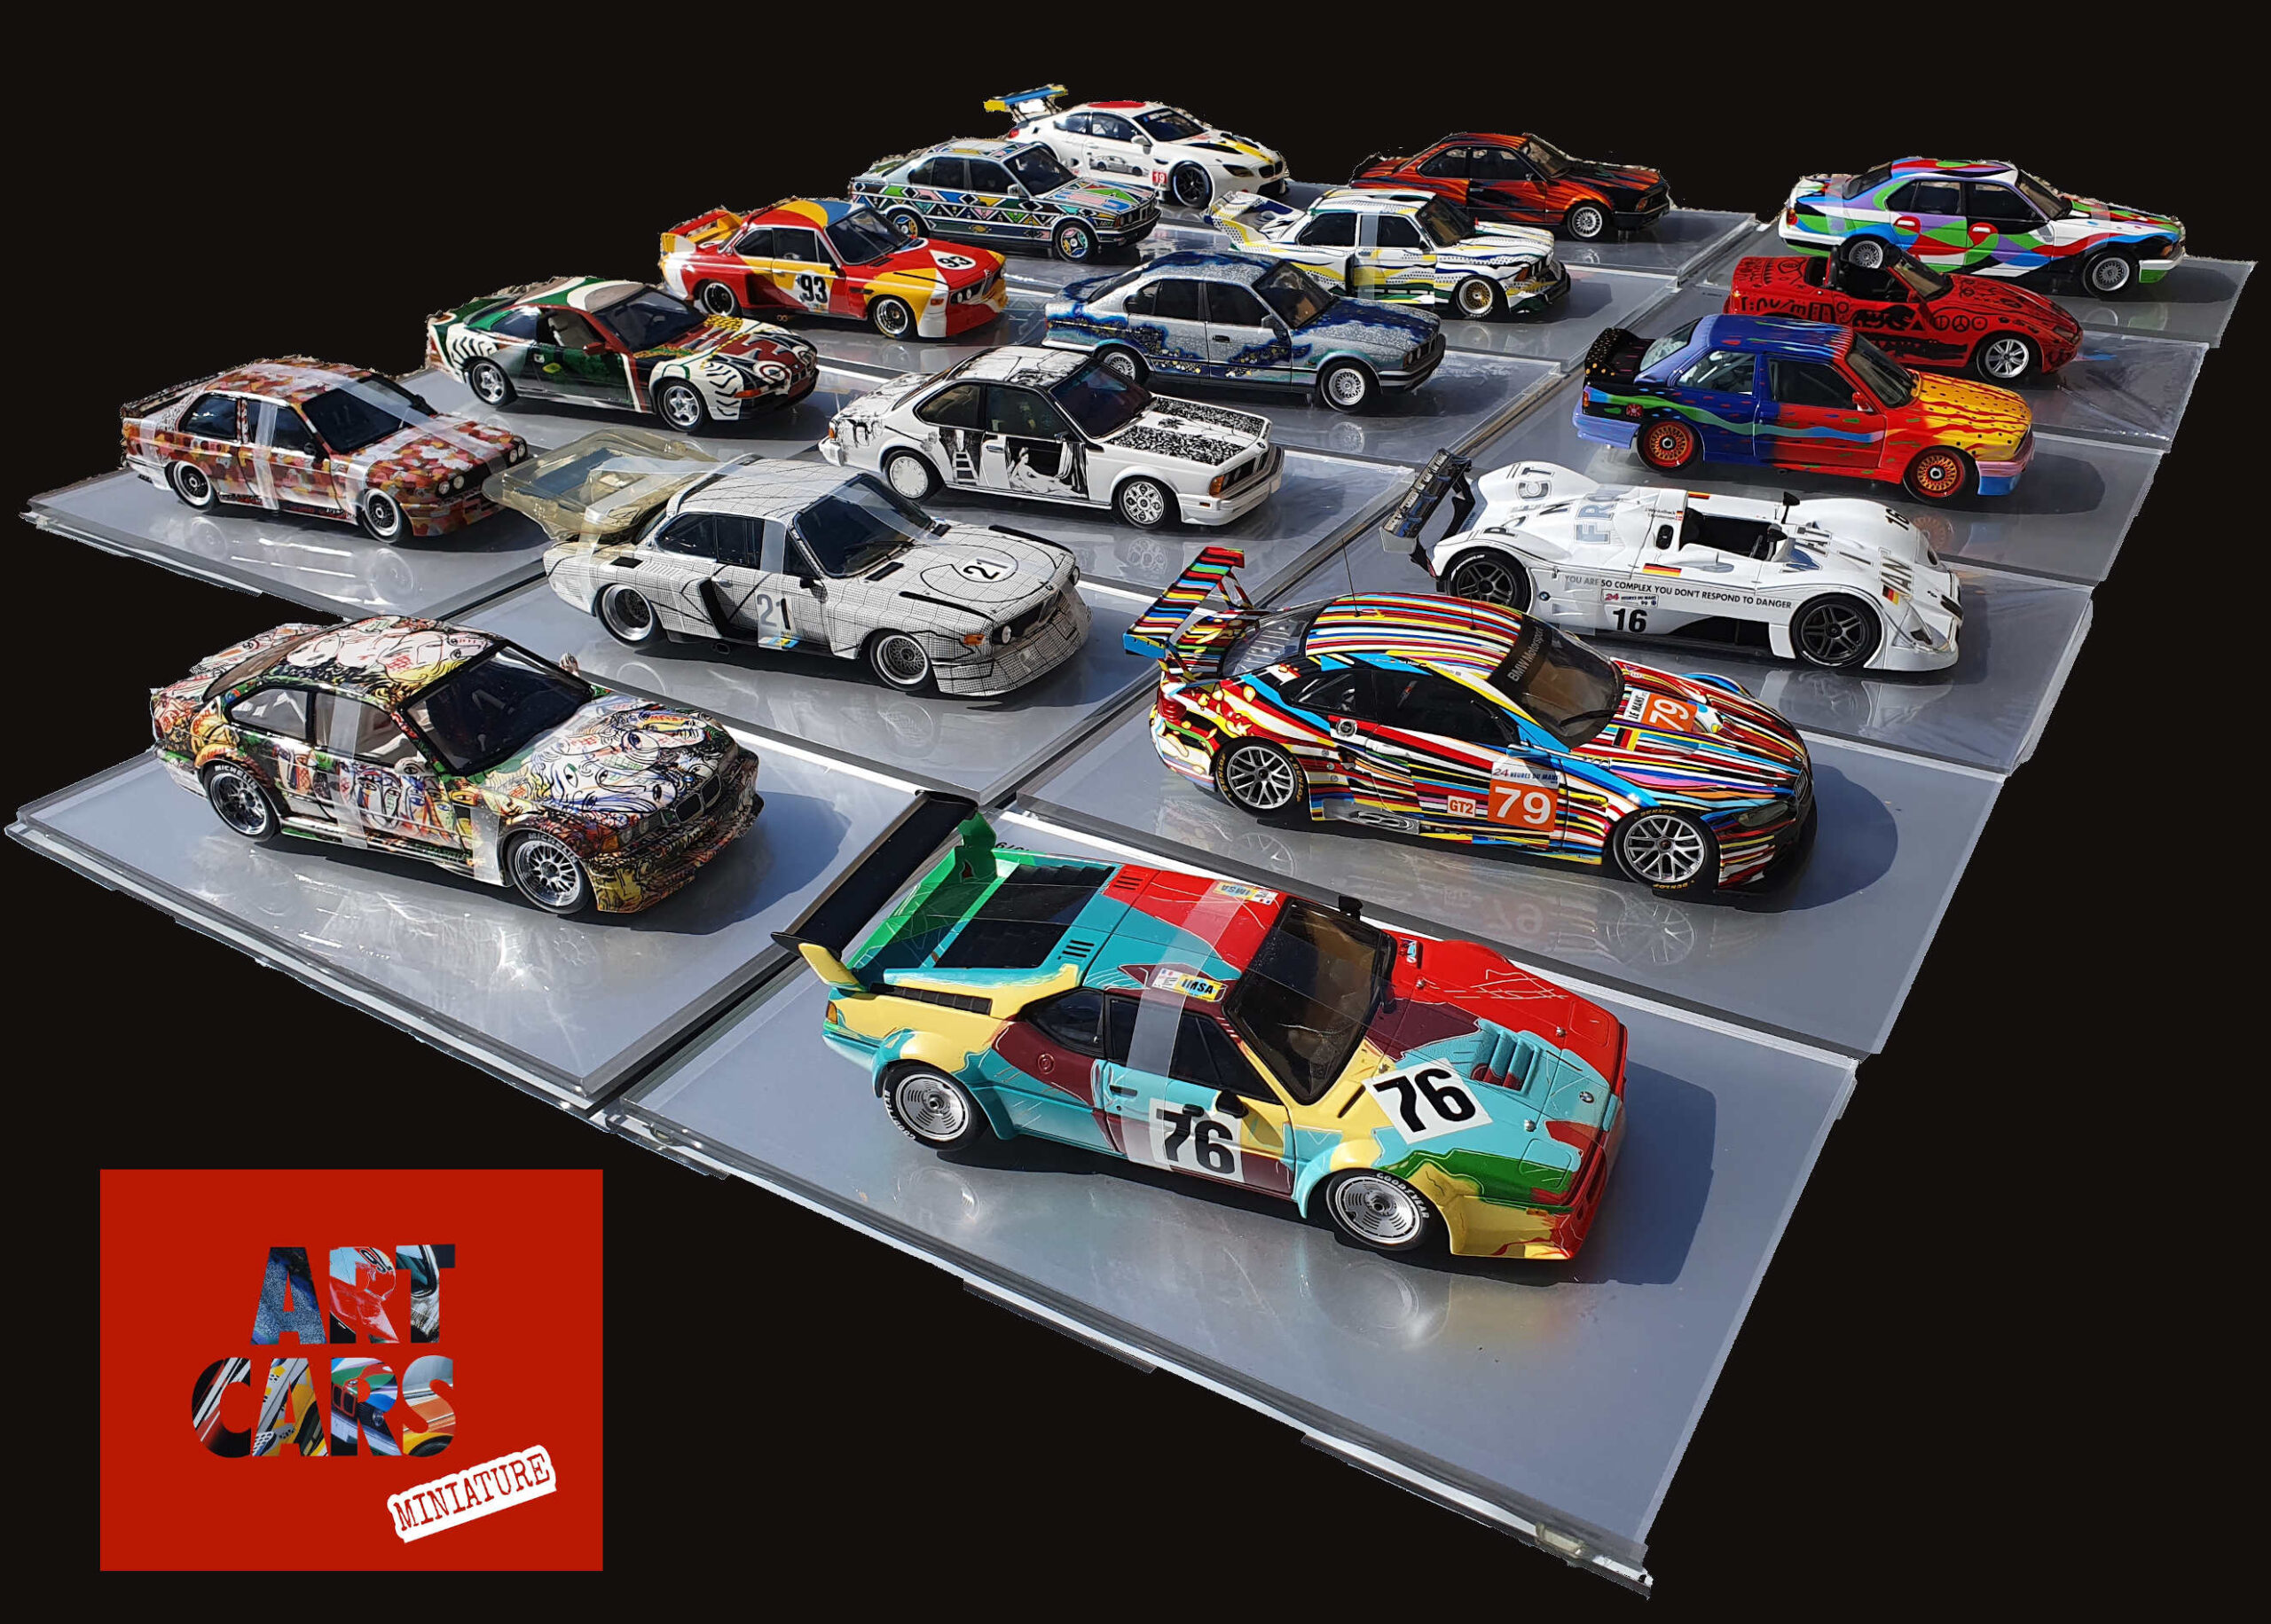 bmw art car 1:18 collection